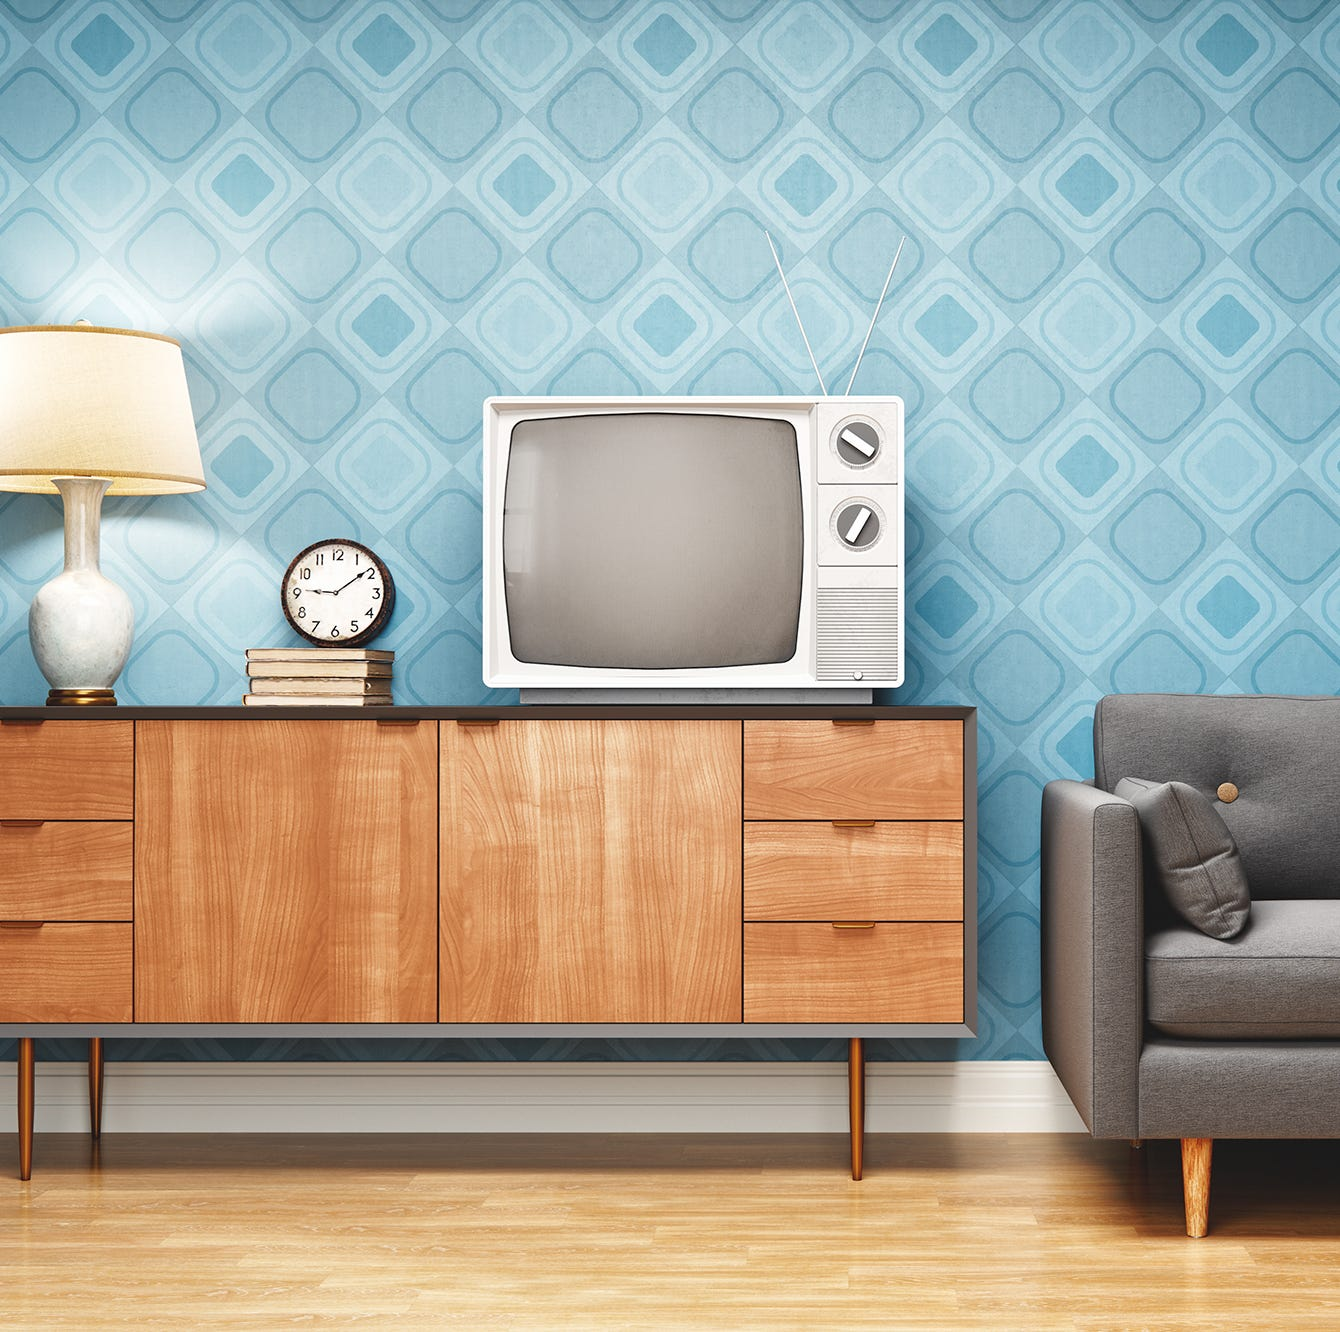 Beware of These 7 Design Choices That Will Turn Off Buyers